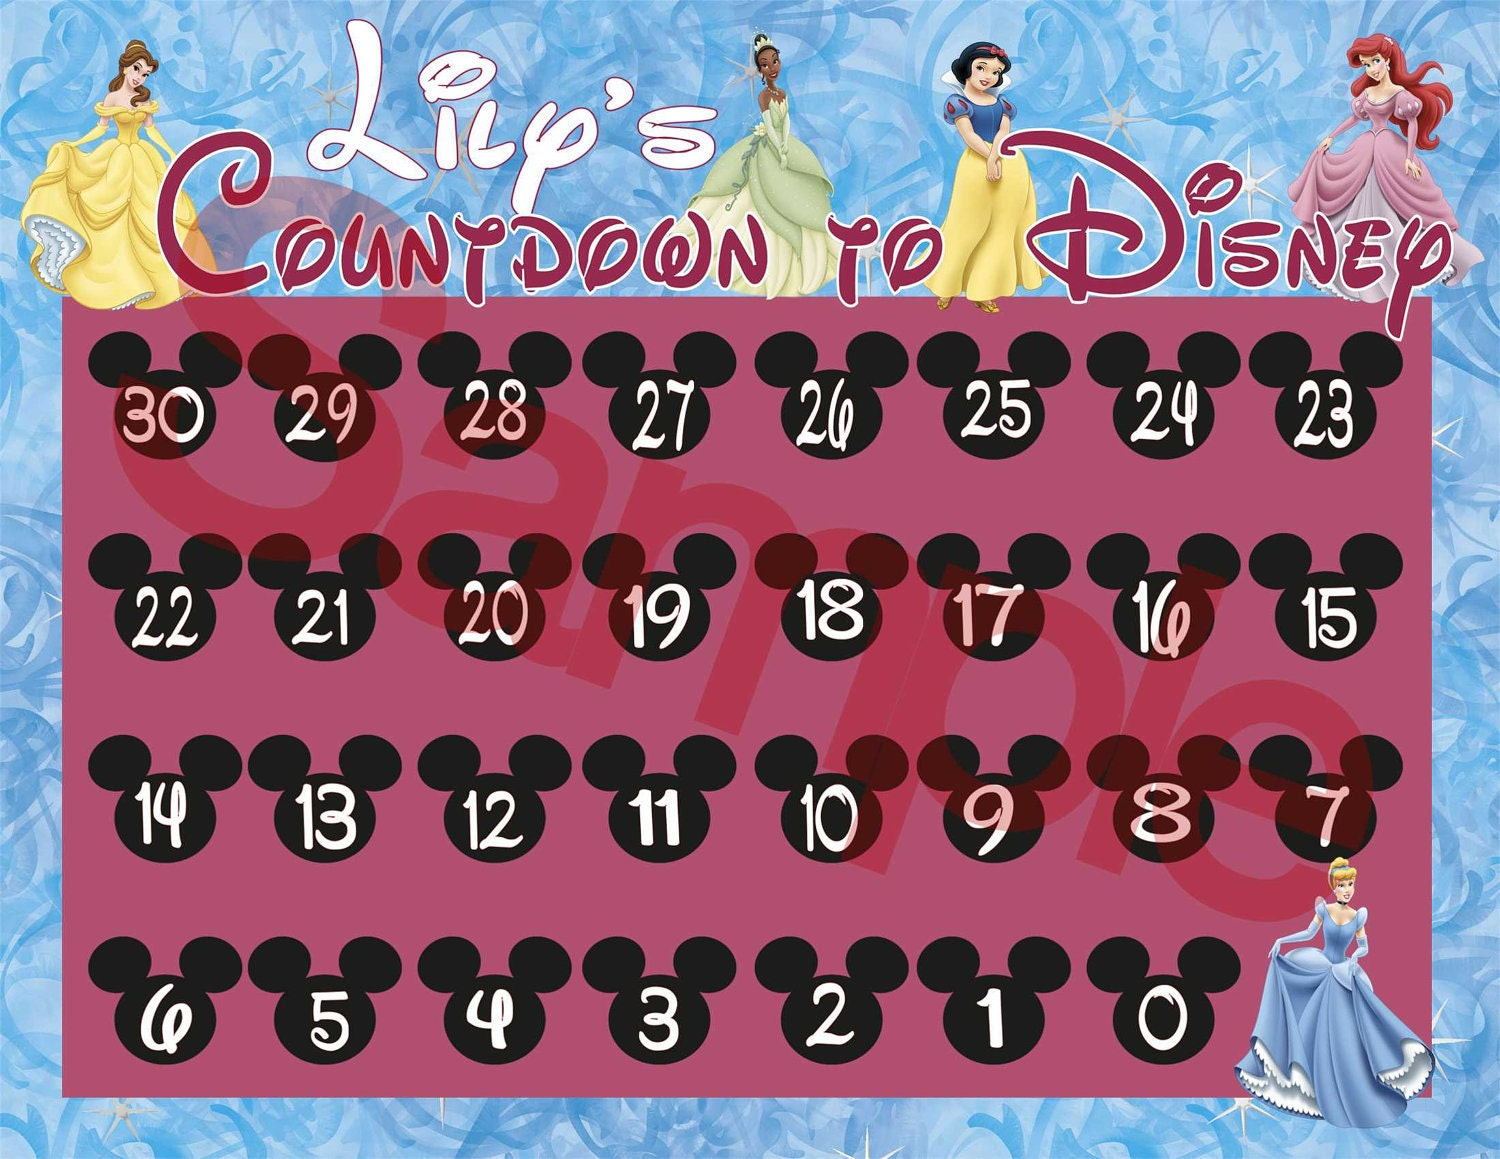 Countdown to Disney Calendars-Princesses by KristysKuteKreations